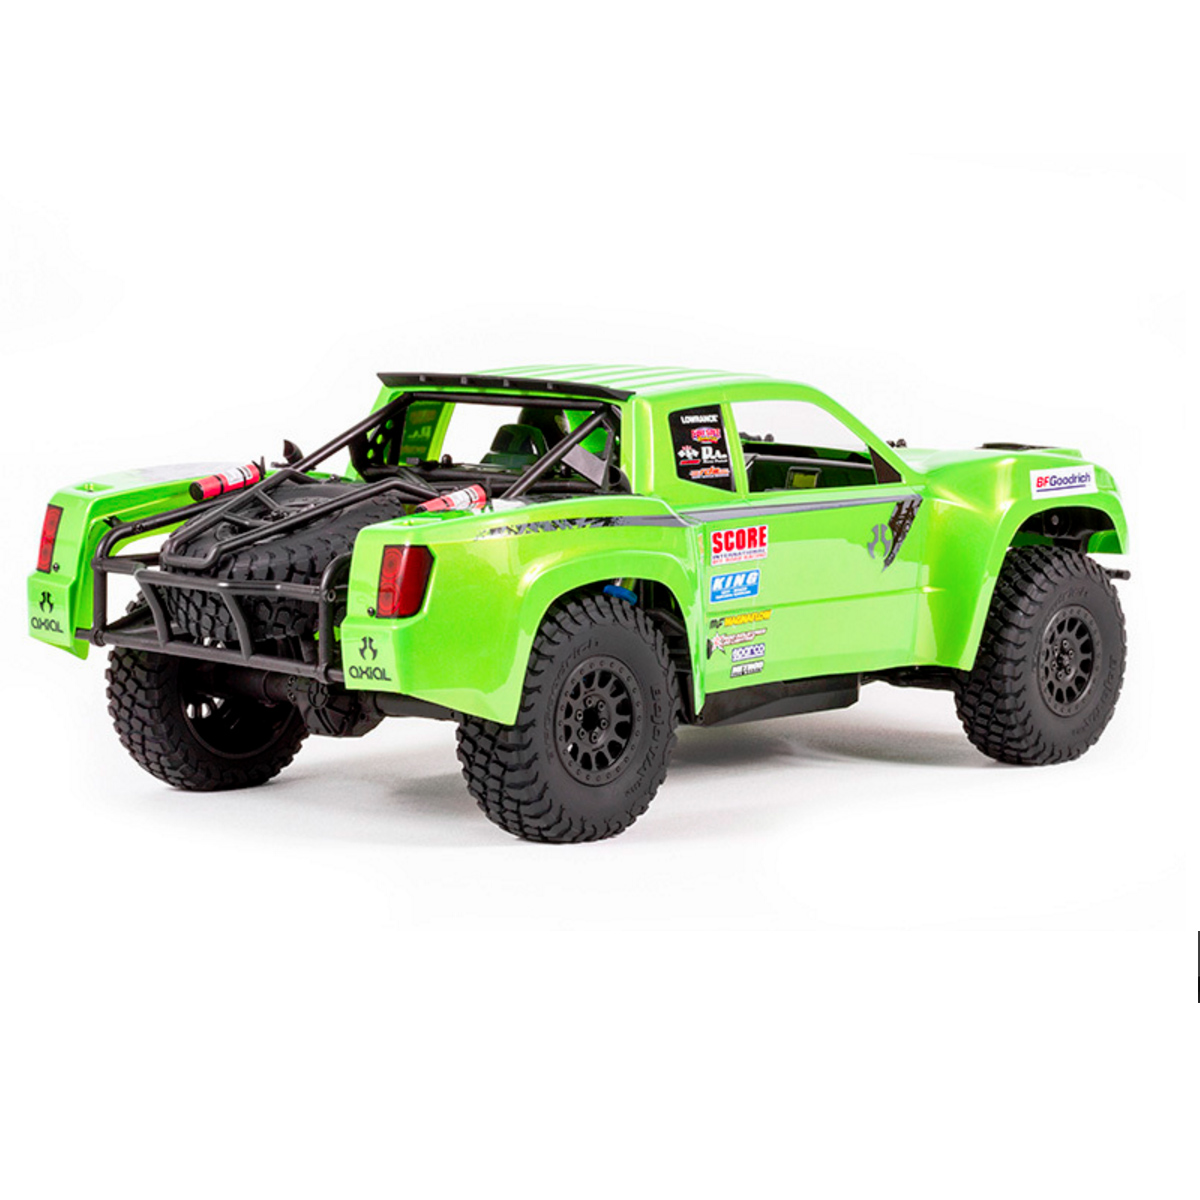 rc truck kits electric with Axial 90050 Yeti Rc Trophy Truck on Rc4wd Trail Finder 2 Kit also 28c 2026 14 Hummer H2 Red likewise 251810846256 further 191414554469 besides Rocket Rc 110 F1 Car Kit.